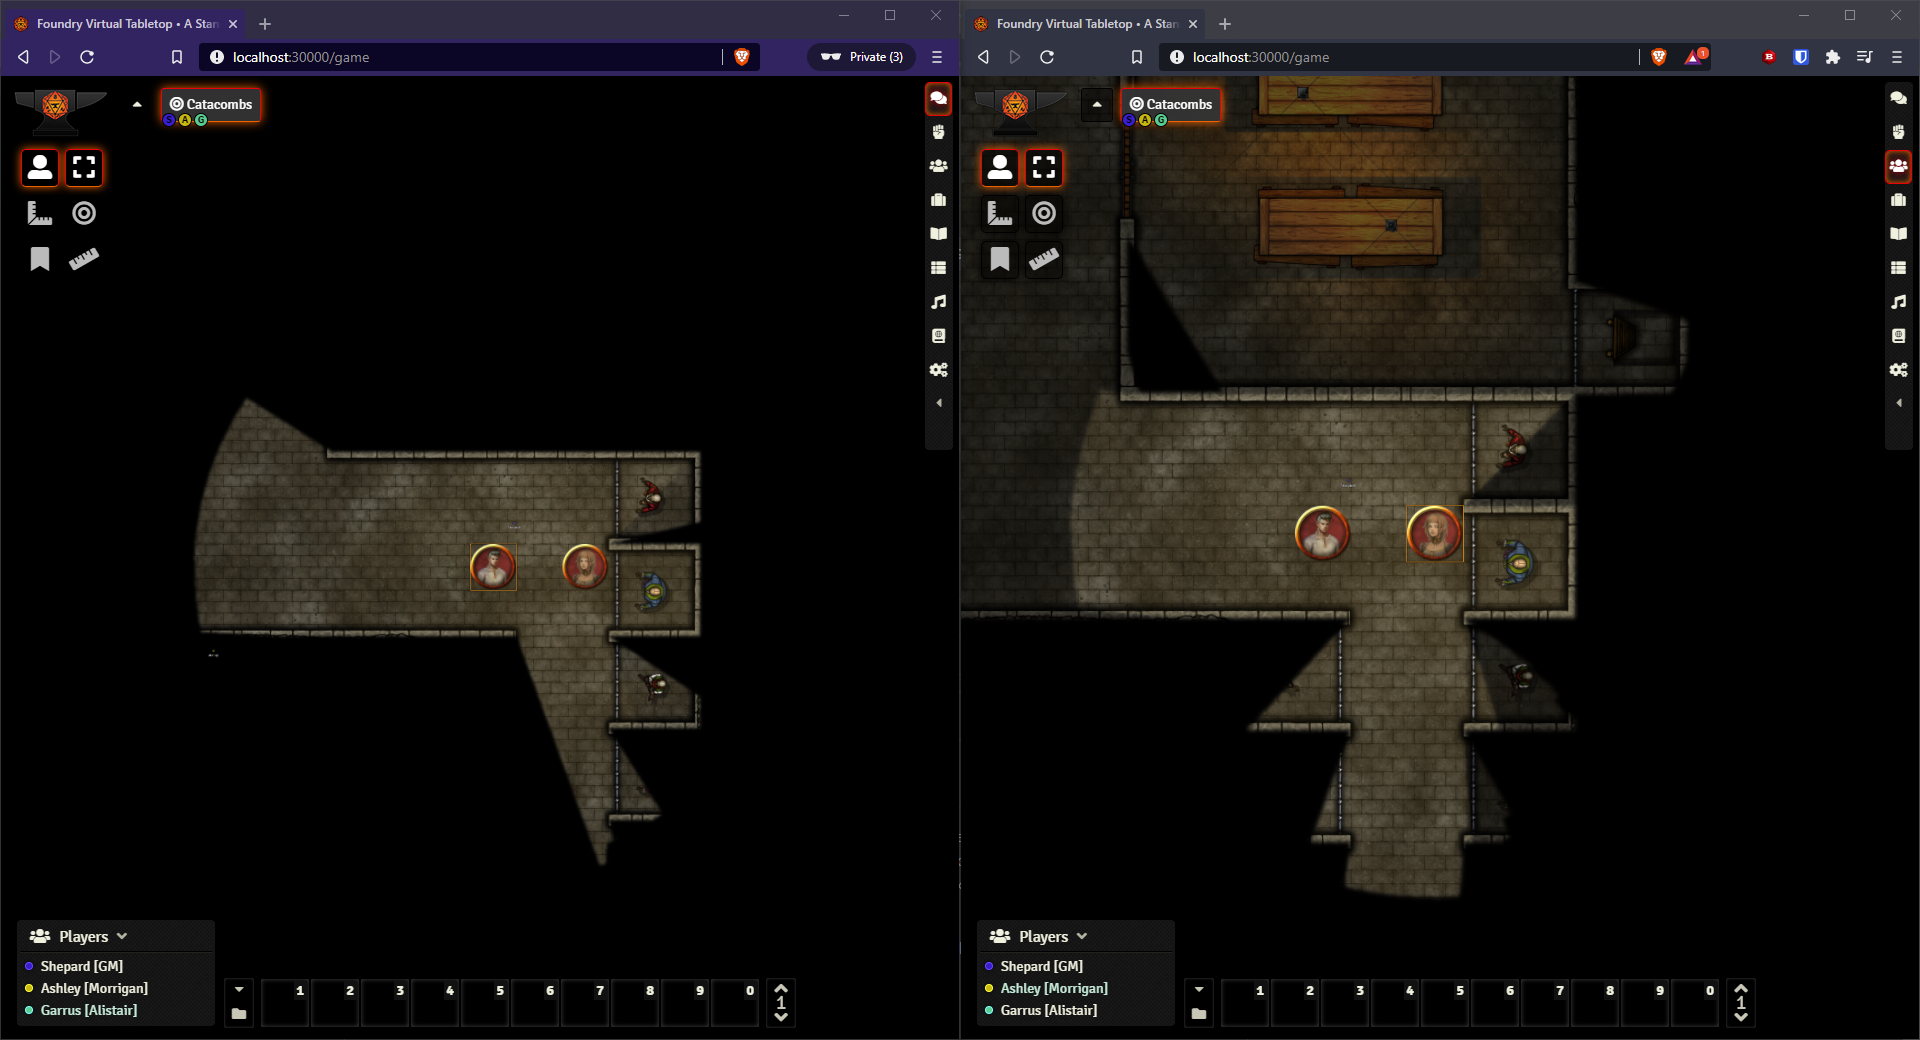 Demonstration screenshot. The left user has Fog Exploration disabled, and the right user has it enabled.